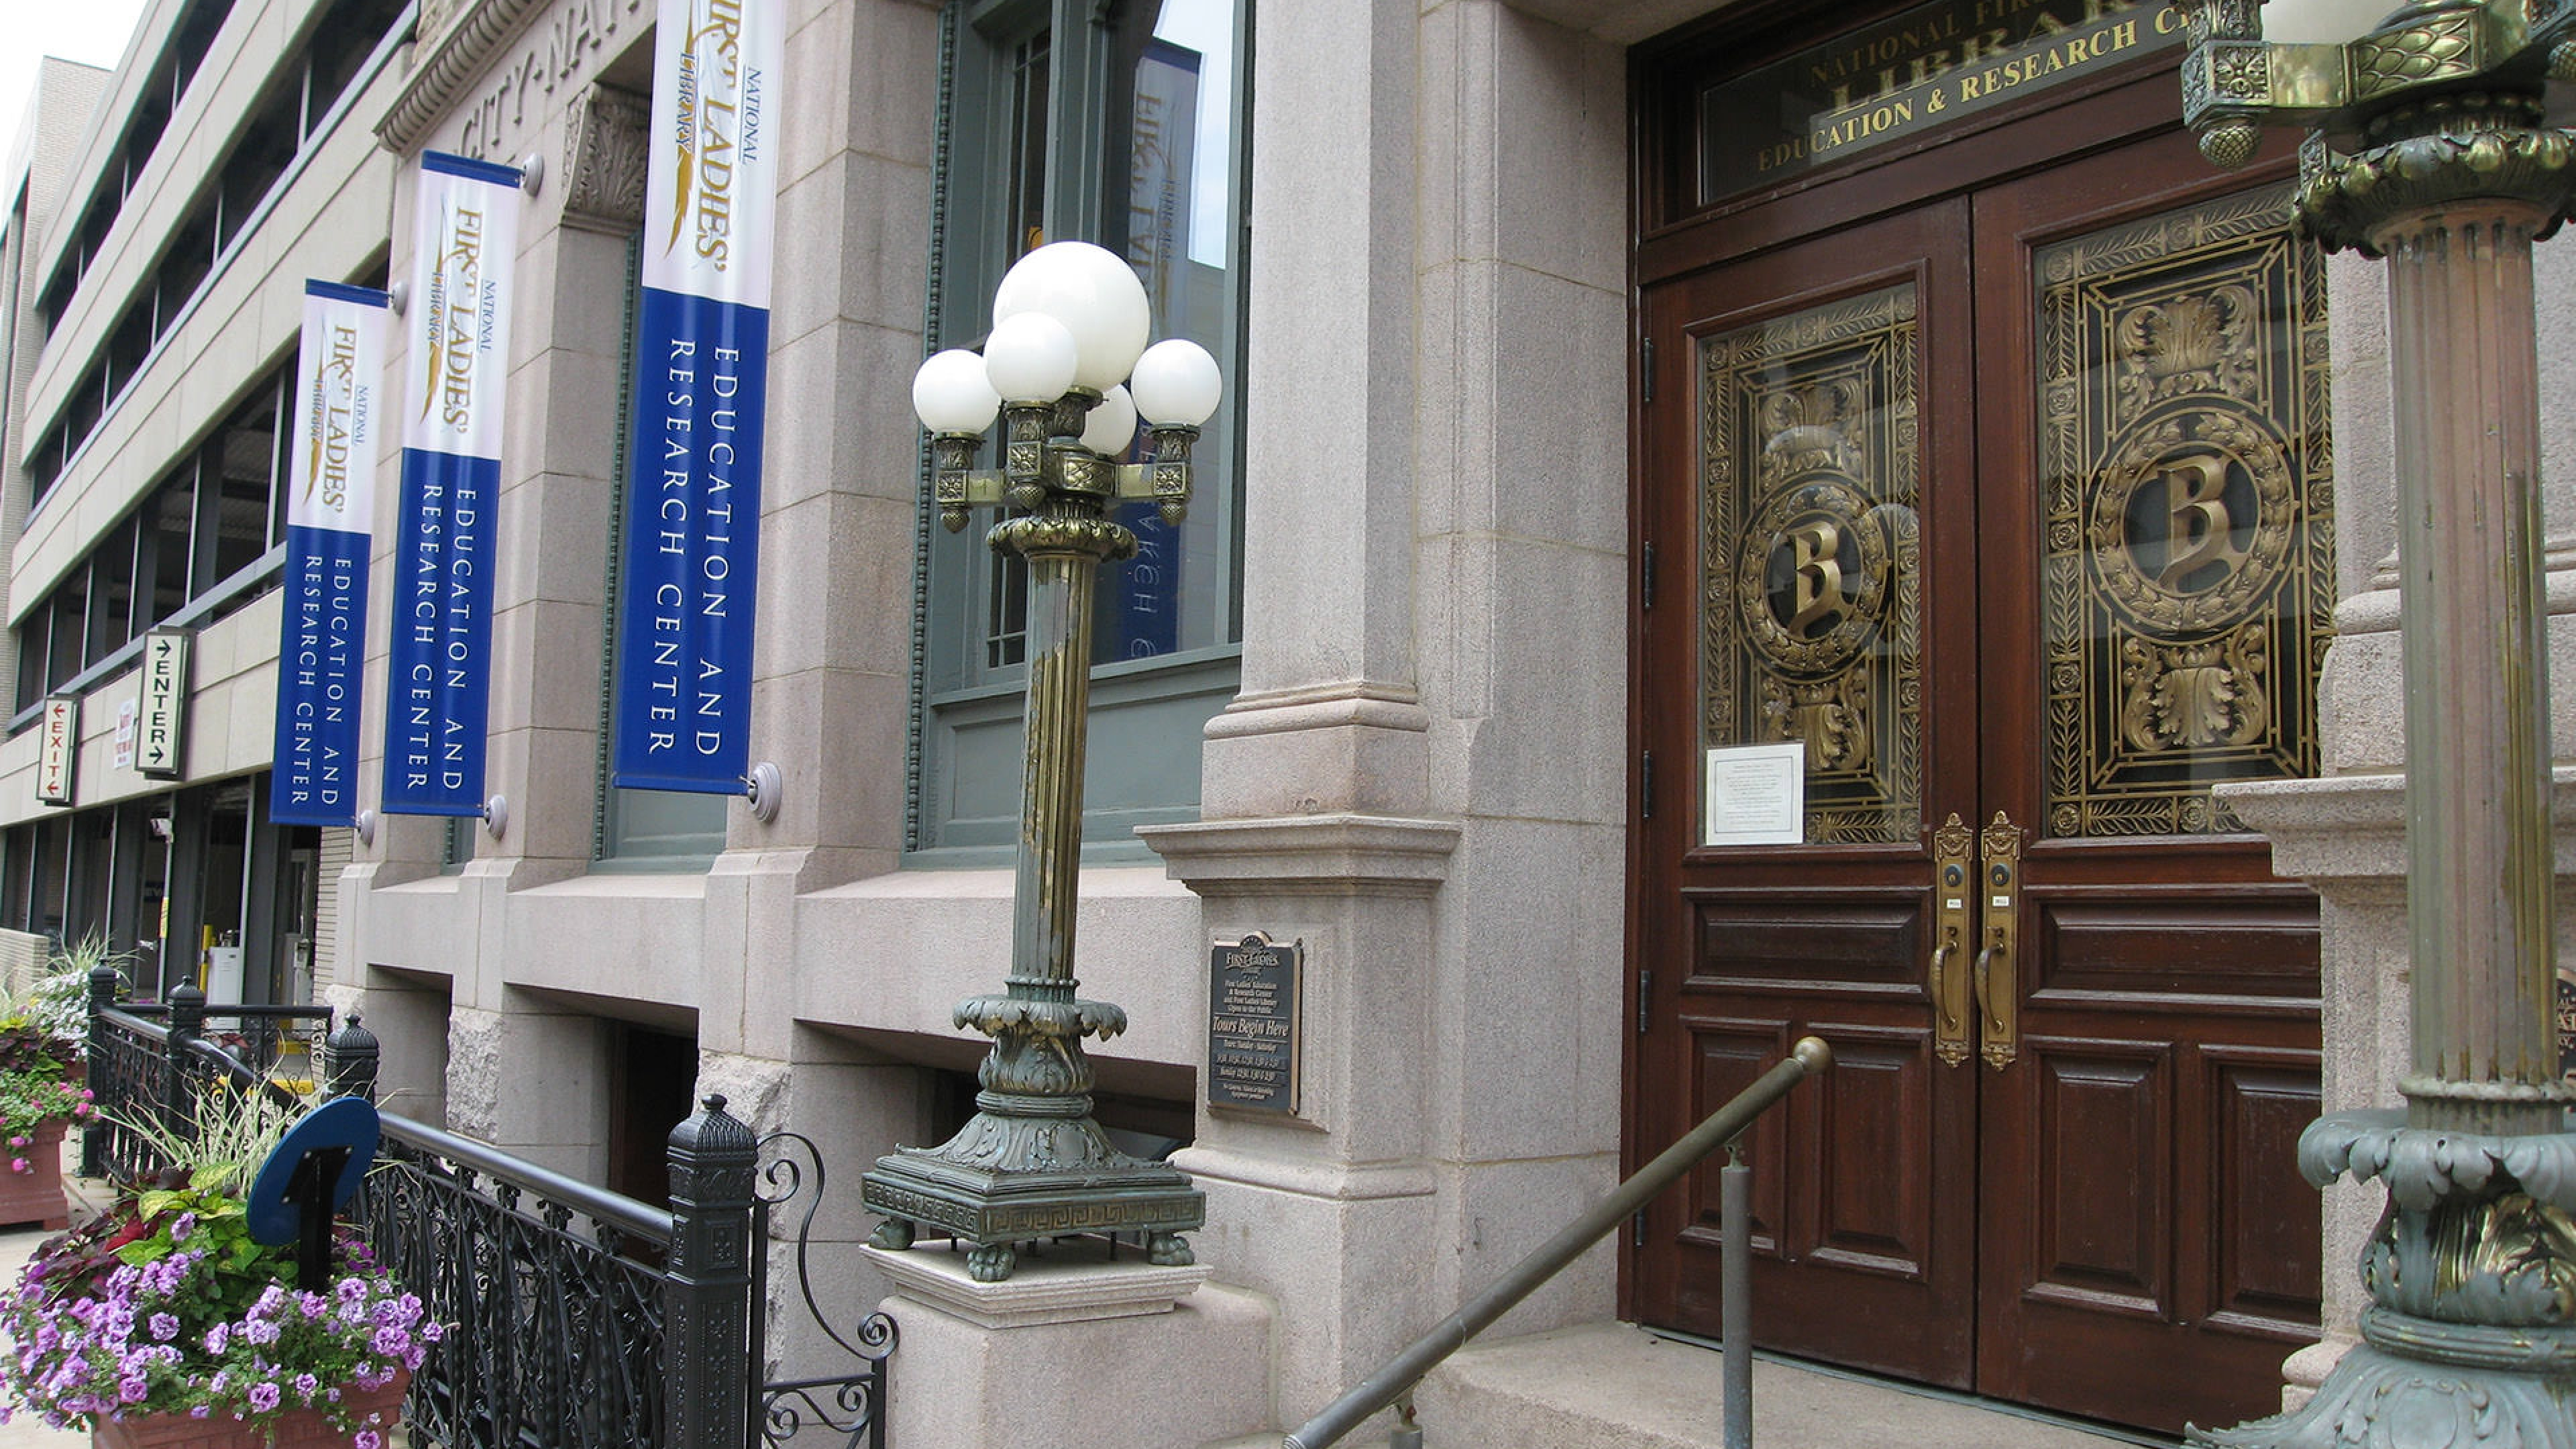 First Ladies National Historic Site main entrance at the 1895 City National Bank Building